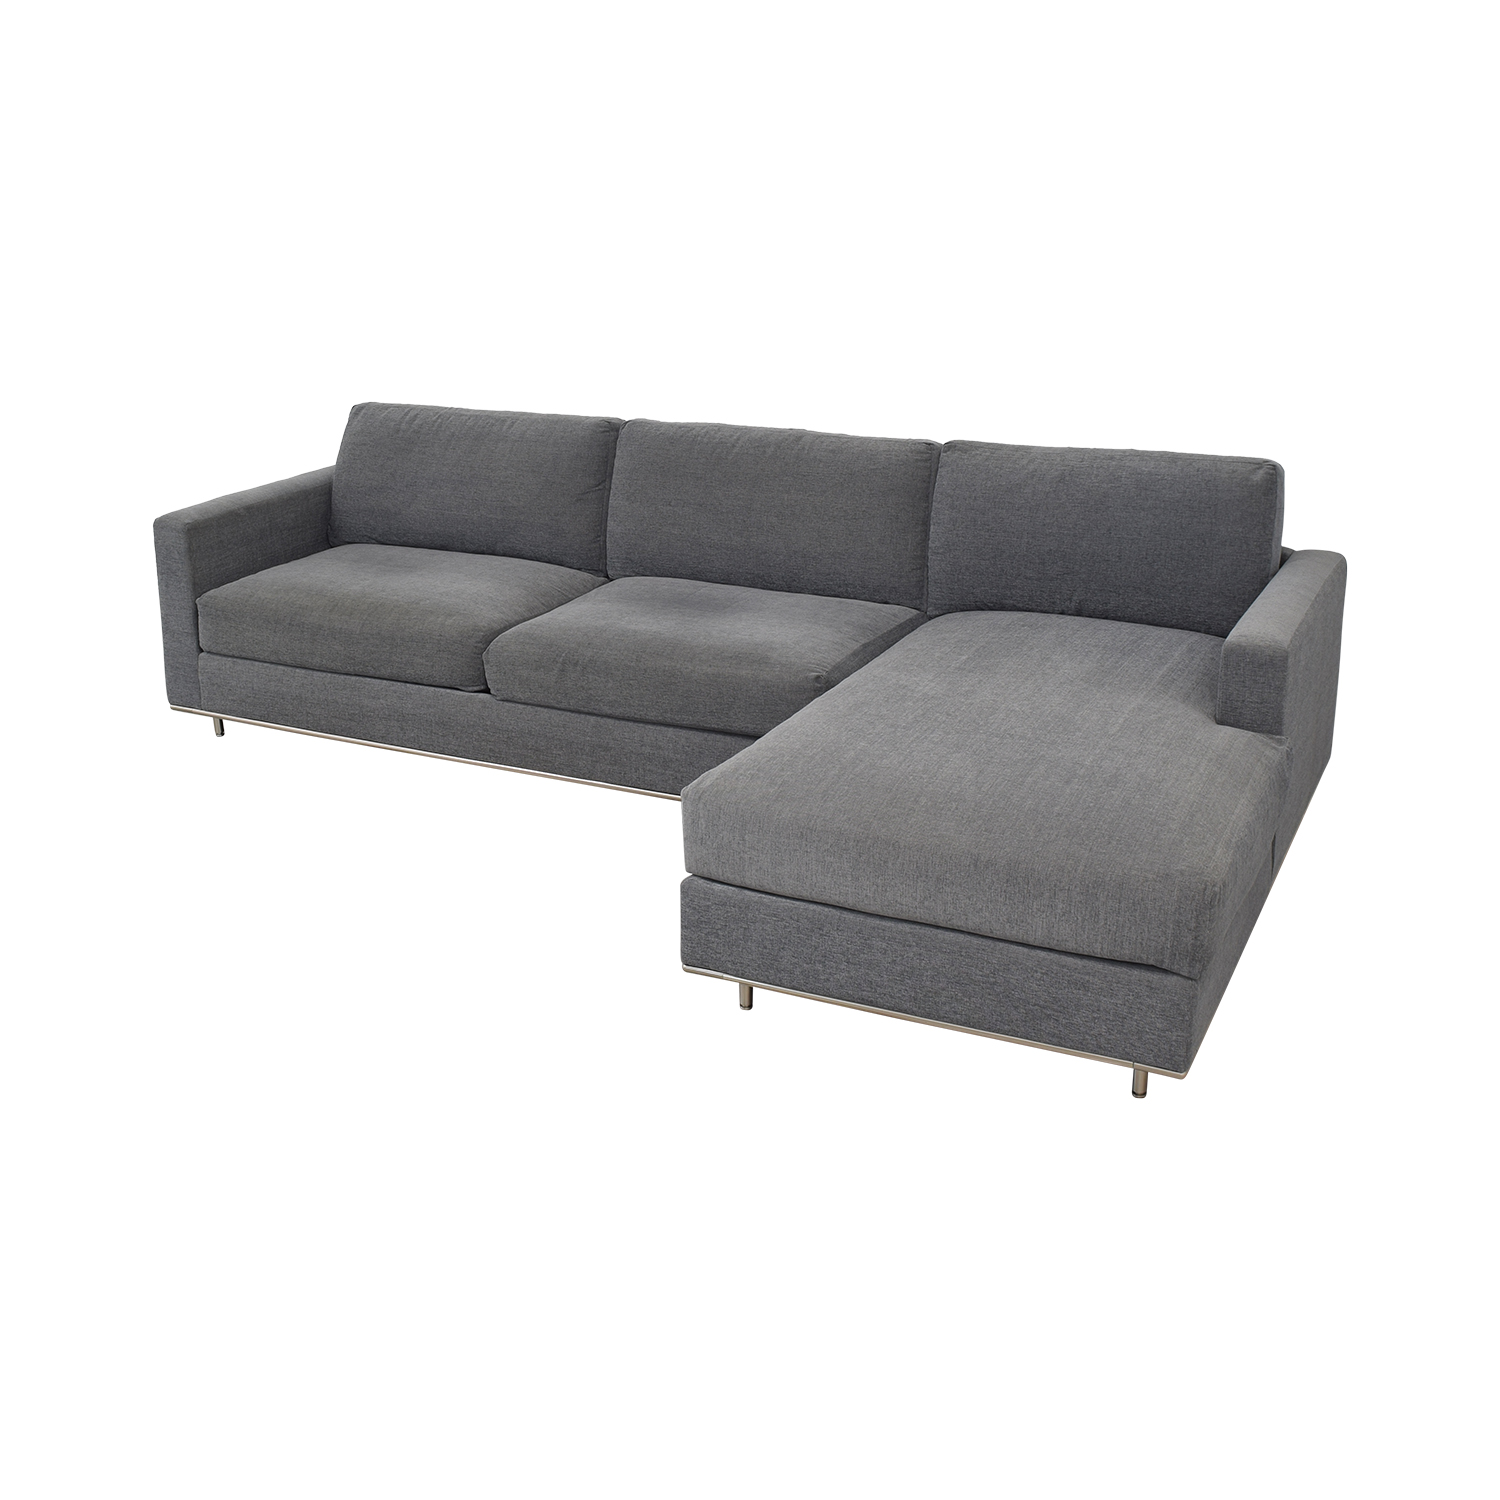 buy Weiman Weiman Sectional Sofa with Chaise online